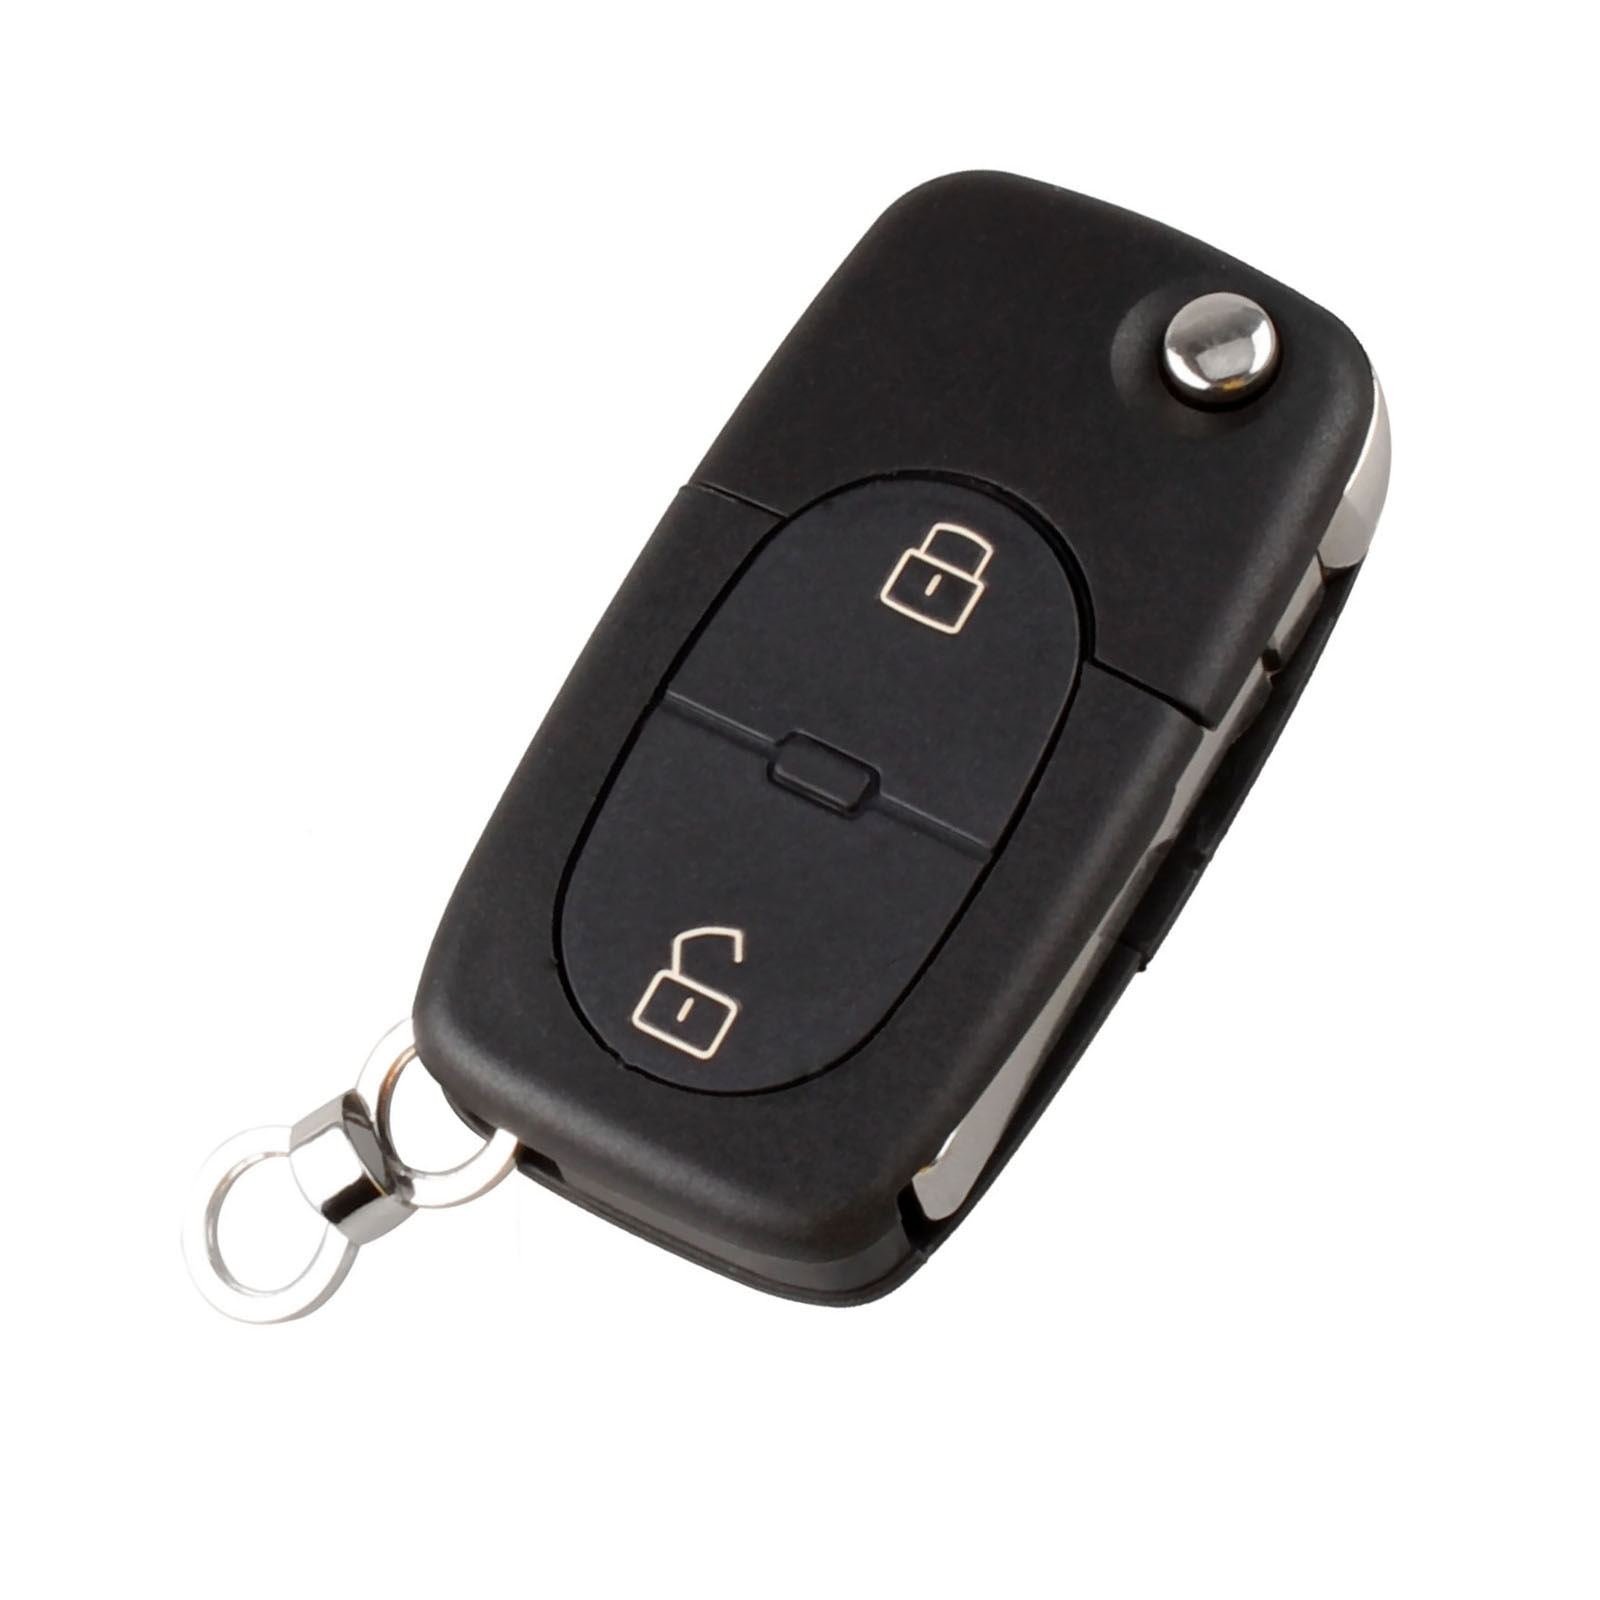 Car Folding Remote Key Fob Case 2 Buttons Replacement Car Key Shell Fit For Audi A2 A3 A4 A6 CR2032 Blank Blade Car Key in Car Key from Automobiles Motorcycles